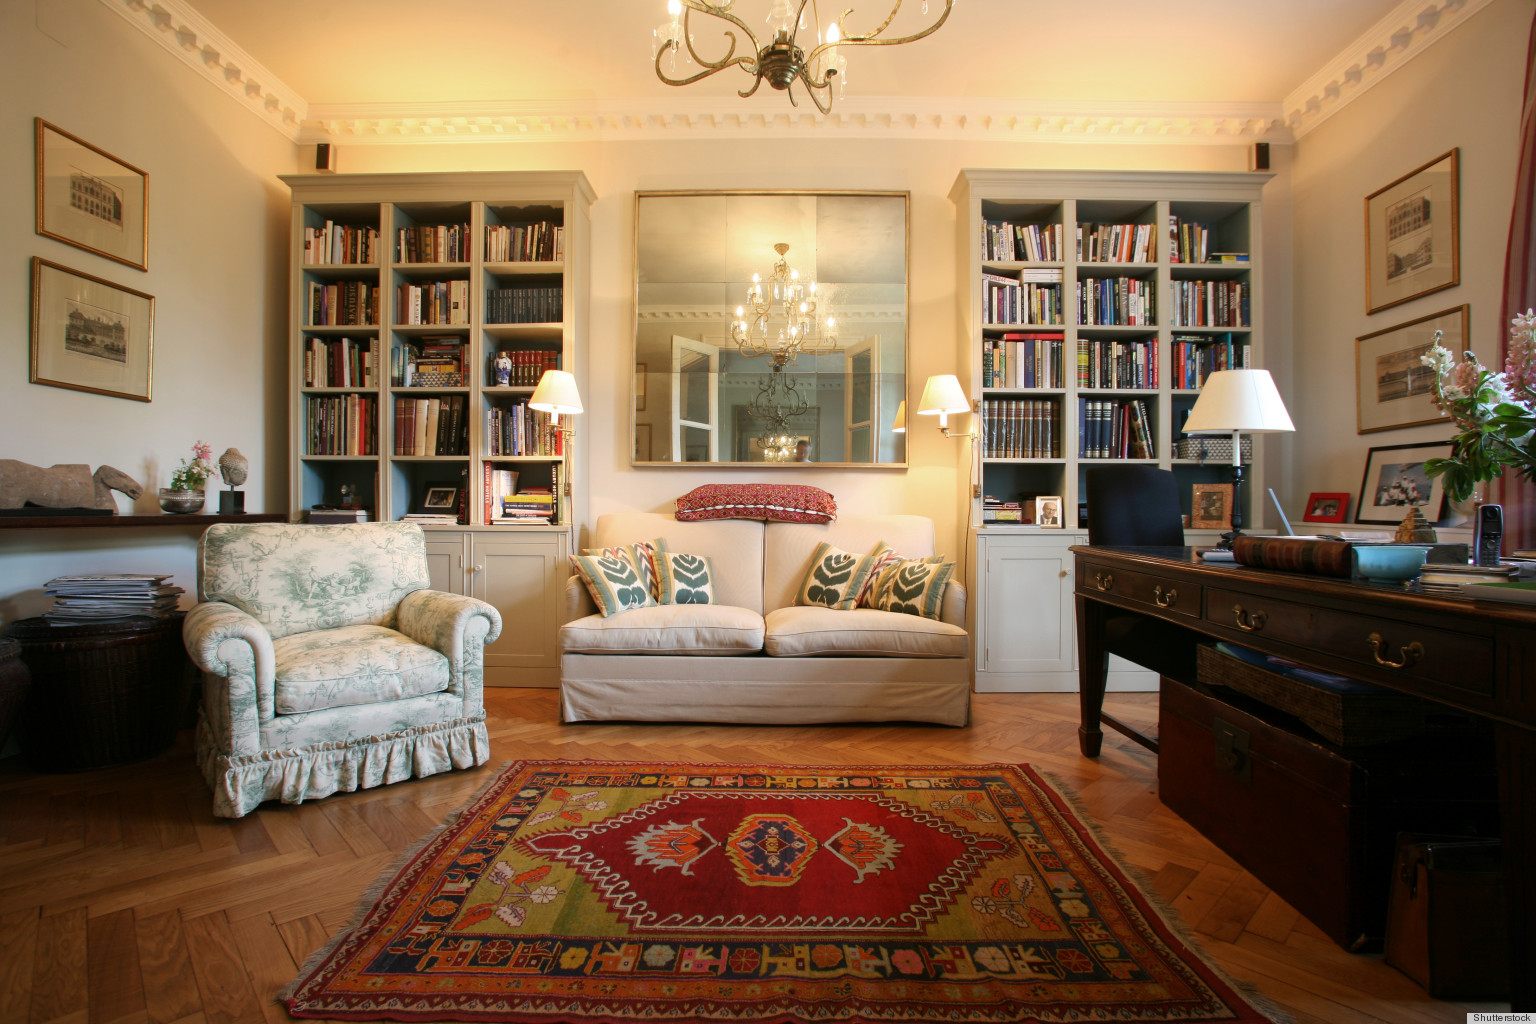 The $150 Living Room Makeover